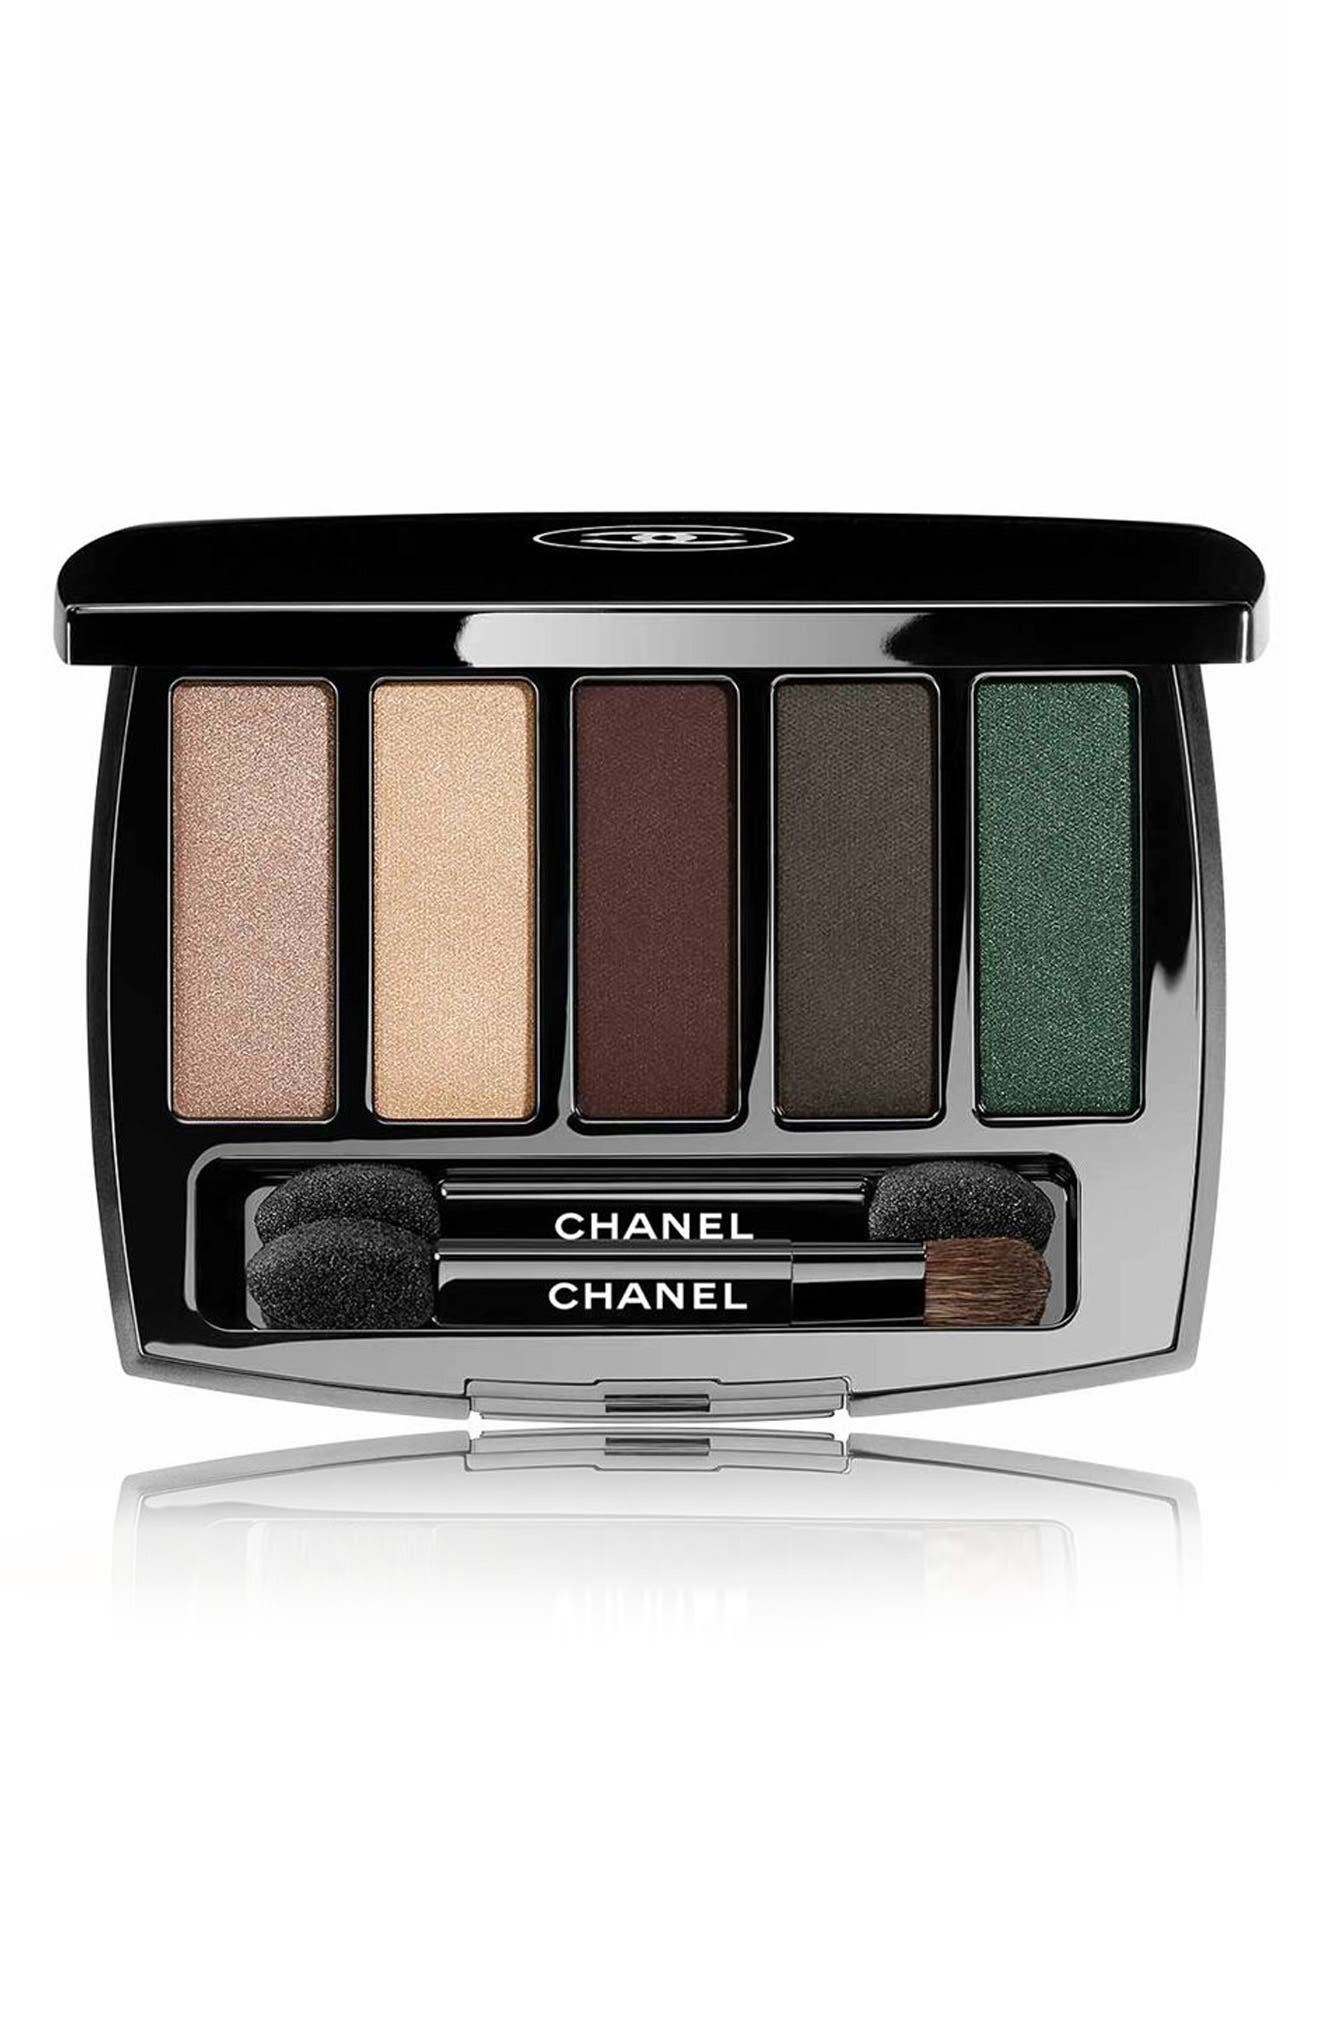 CHANEL TRAIT DE CARACTERE Eyeshadow Palette (Limited Edition)